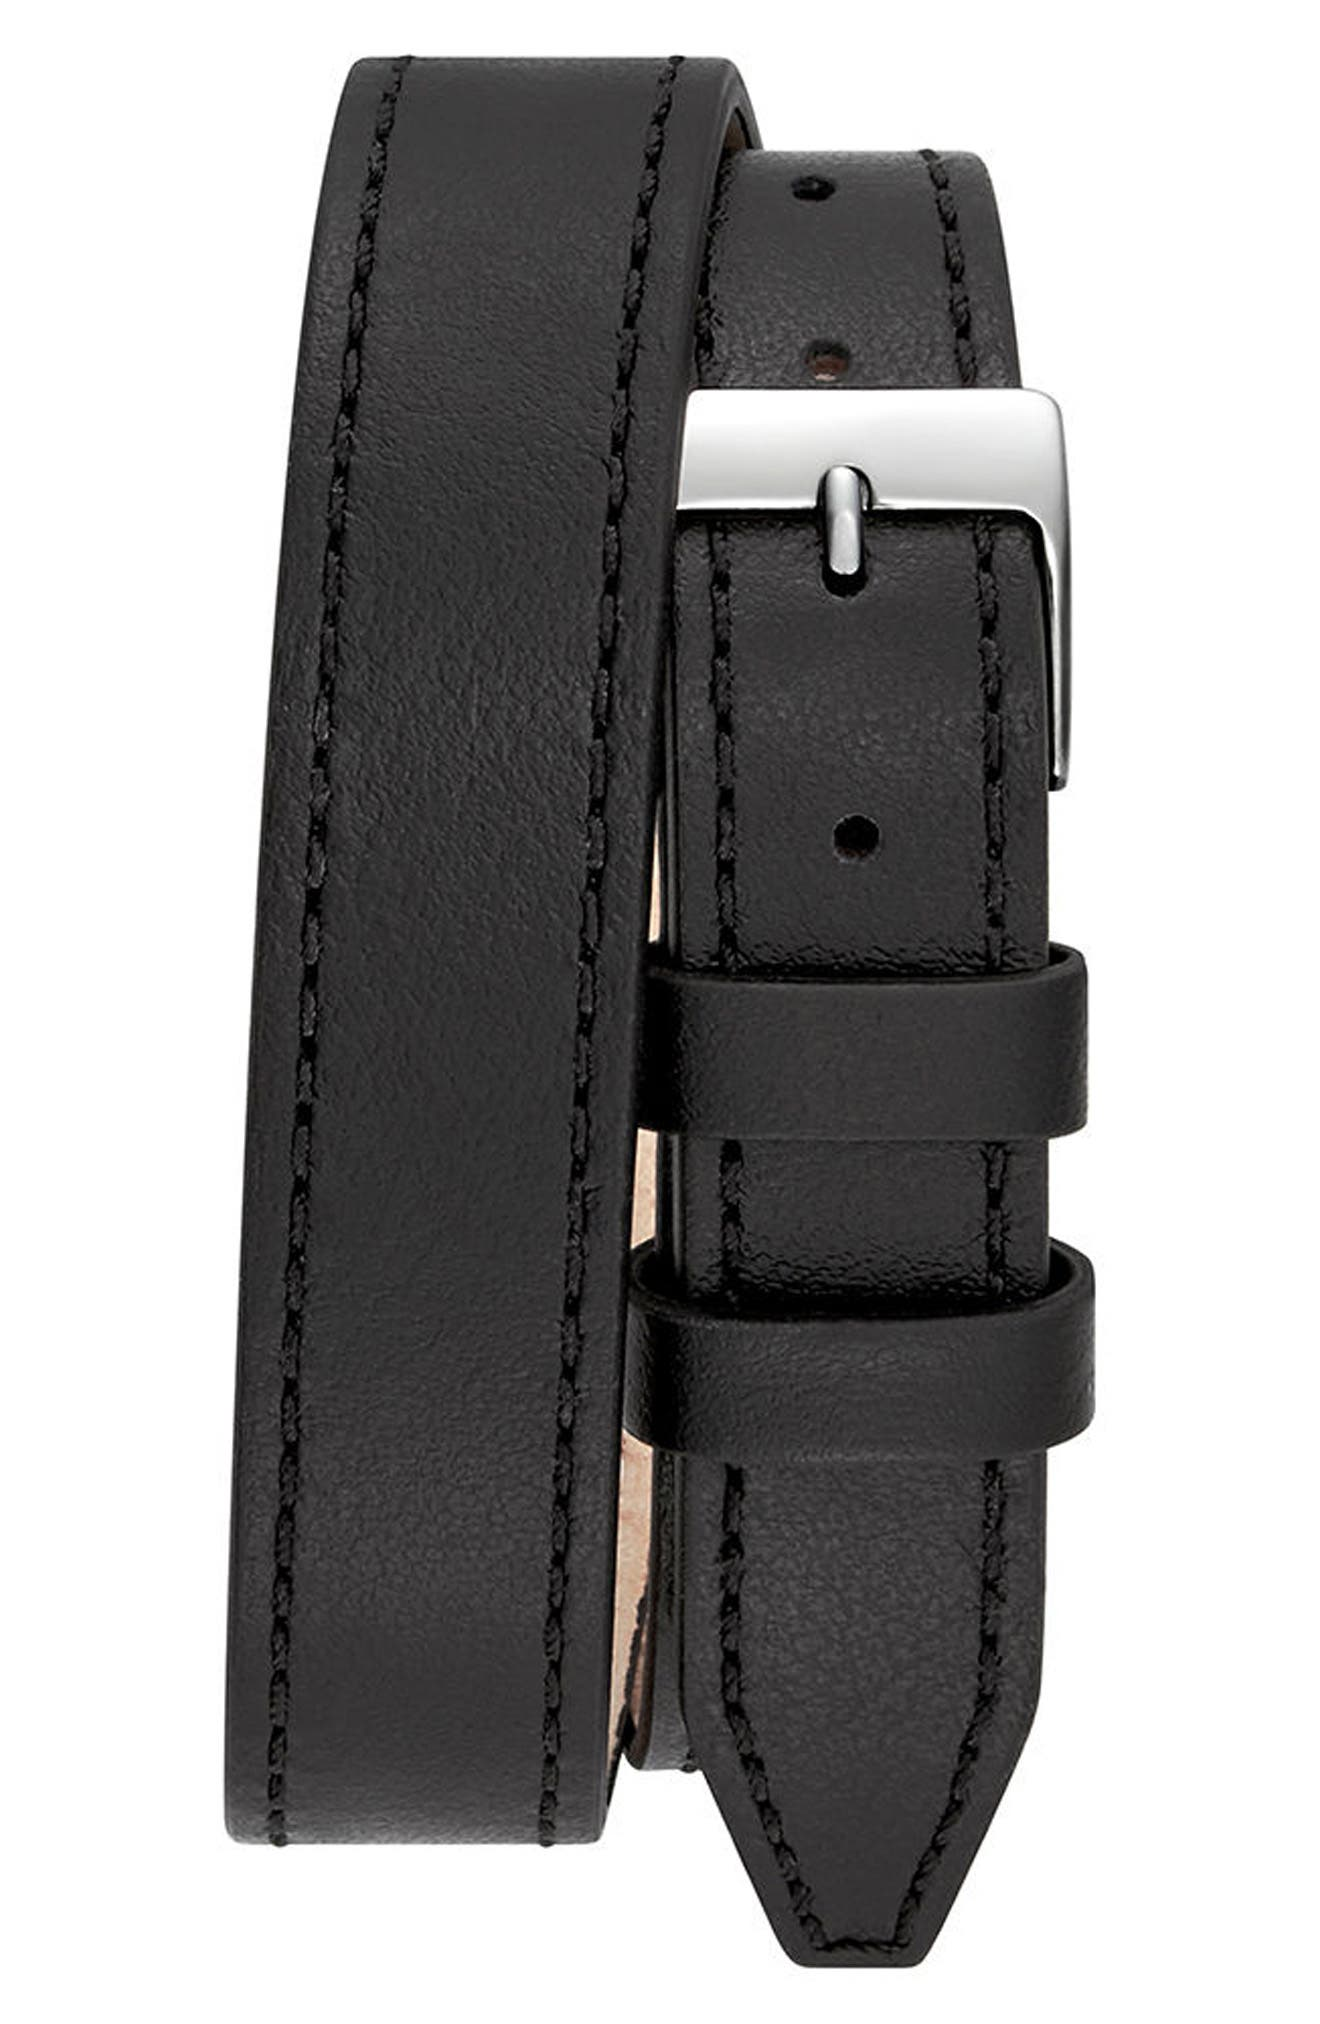 Moment Wrap Leather Strap Watch, 19mm x 30mm,                             Alternate thumbnail 3, color,                             Black/ Lapis/ Silver